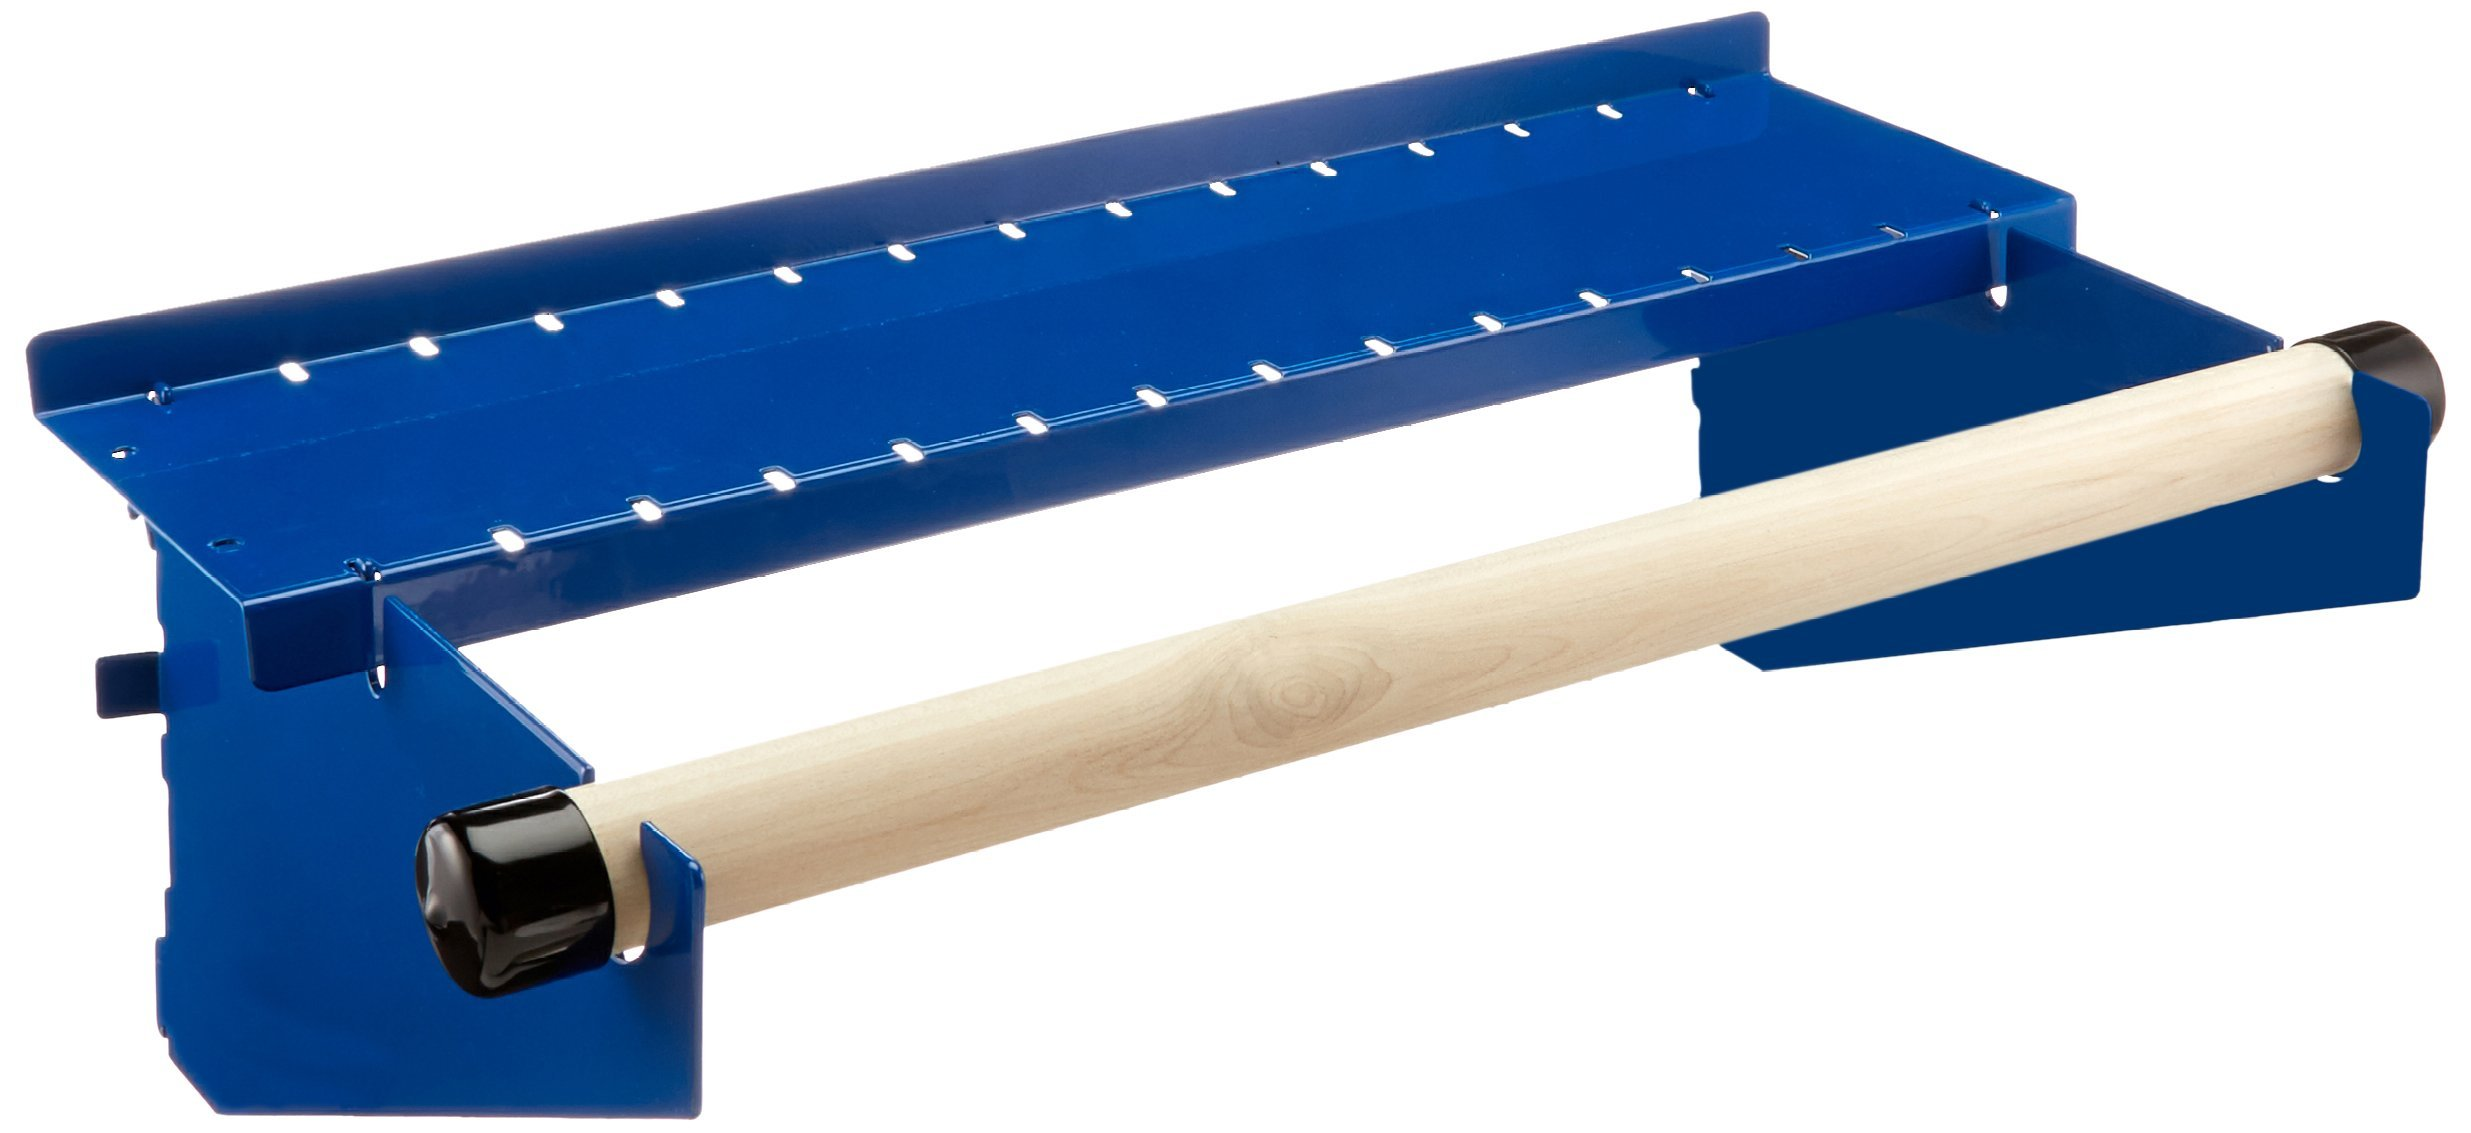 Wall Control ASM-HS-1694 BU Pegboard Paper Towel Holder and Dowel Rod Pegboard Shelf Assembly for Wall Control Pegboard Only